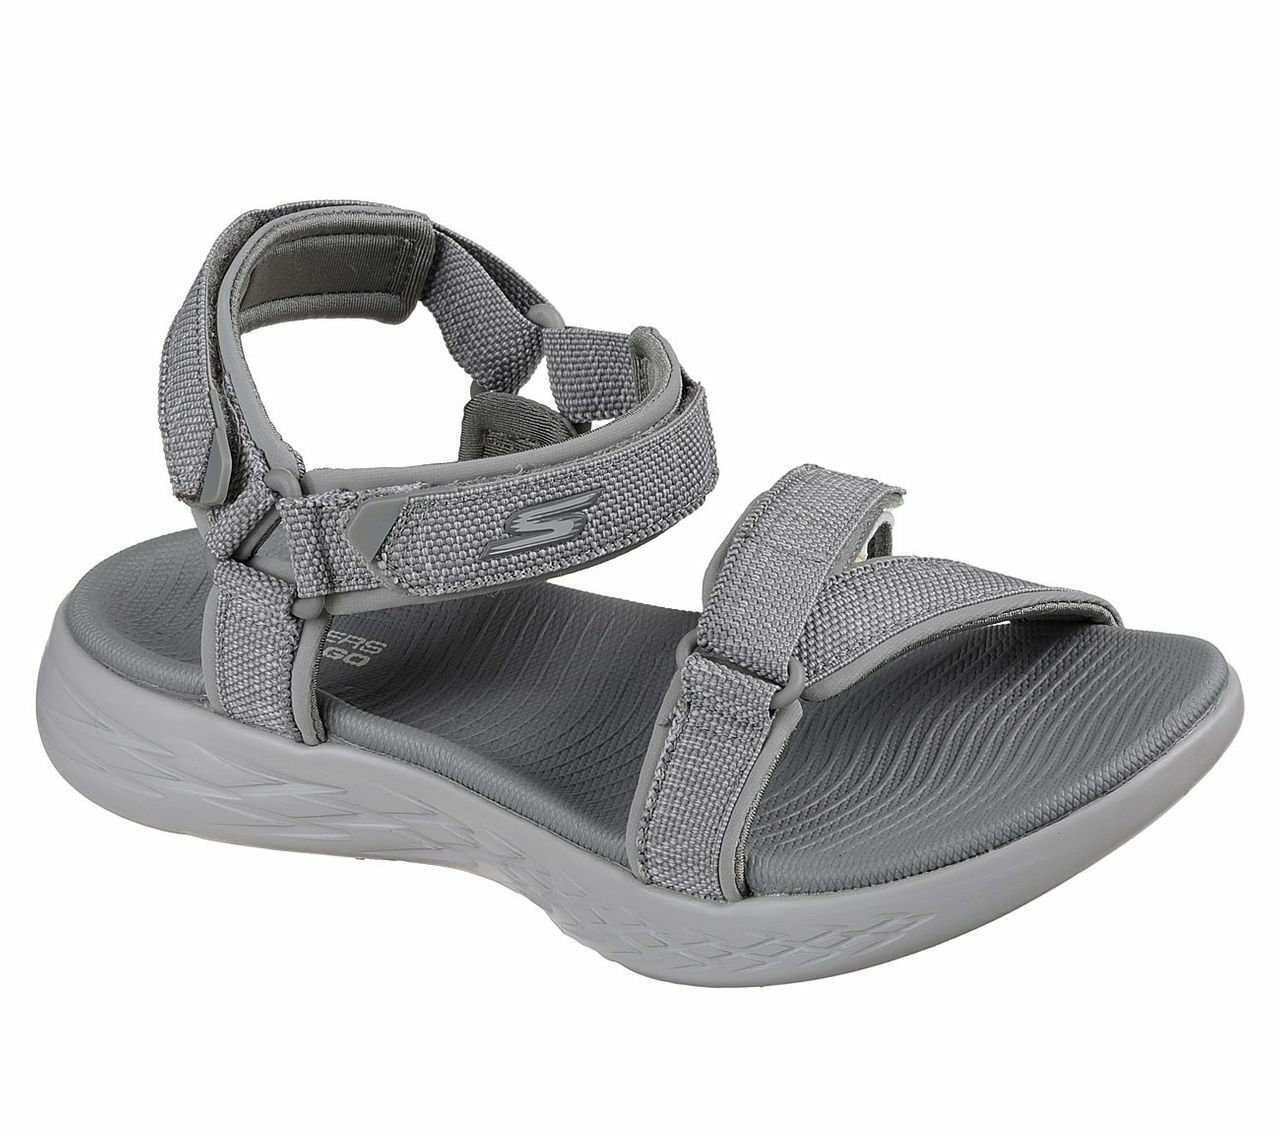 Skechers O-T-G mujer Sandals On-The-Go 600 Radiant Sandalias Mujer Zapatos gris